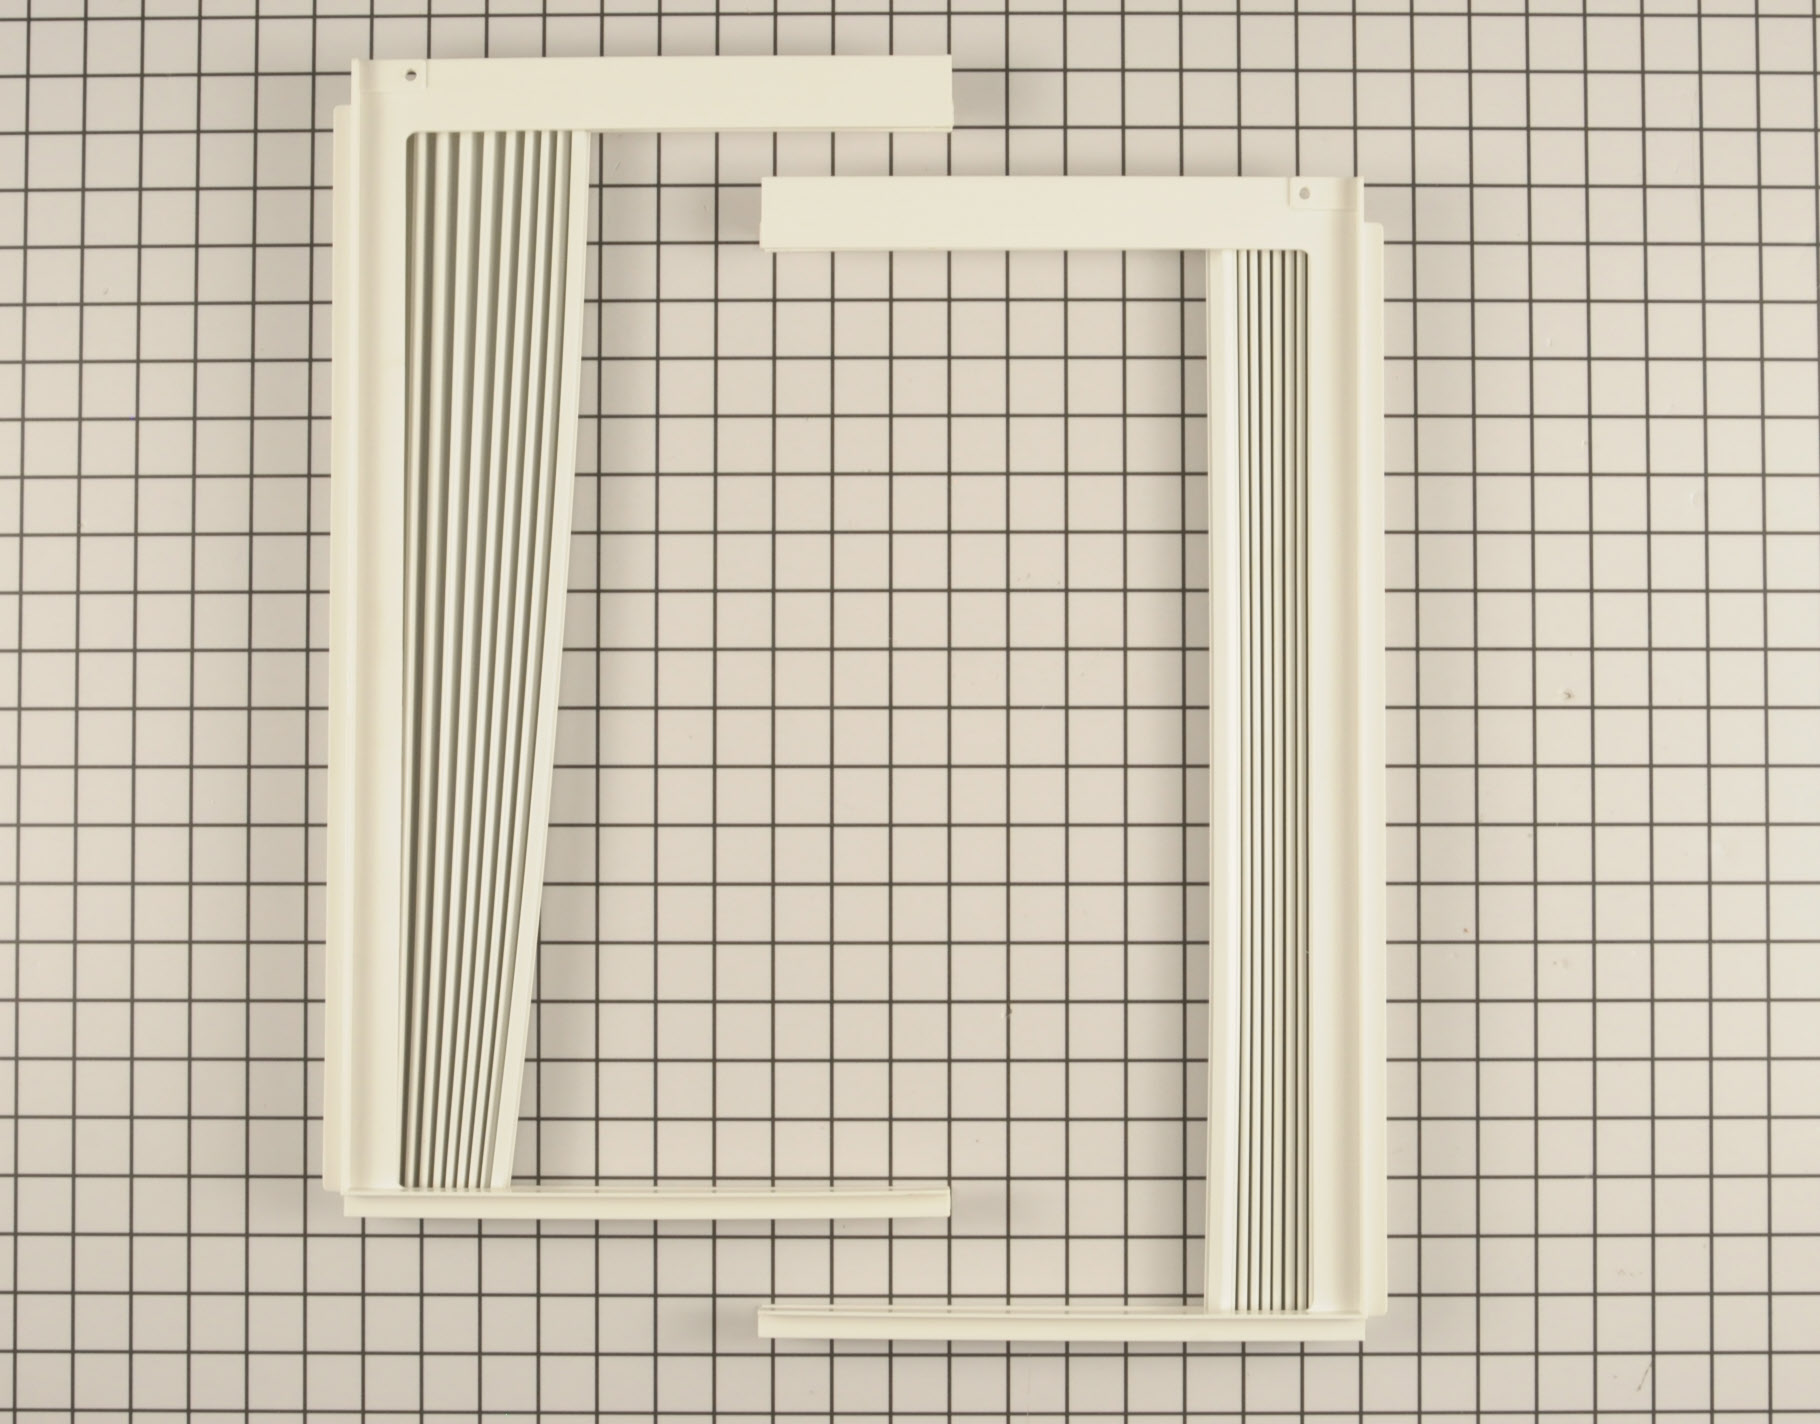 Kenmore Air Conditioner Part # 5304476334 - Window Side Curtain and Frame